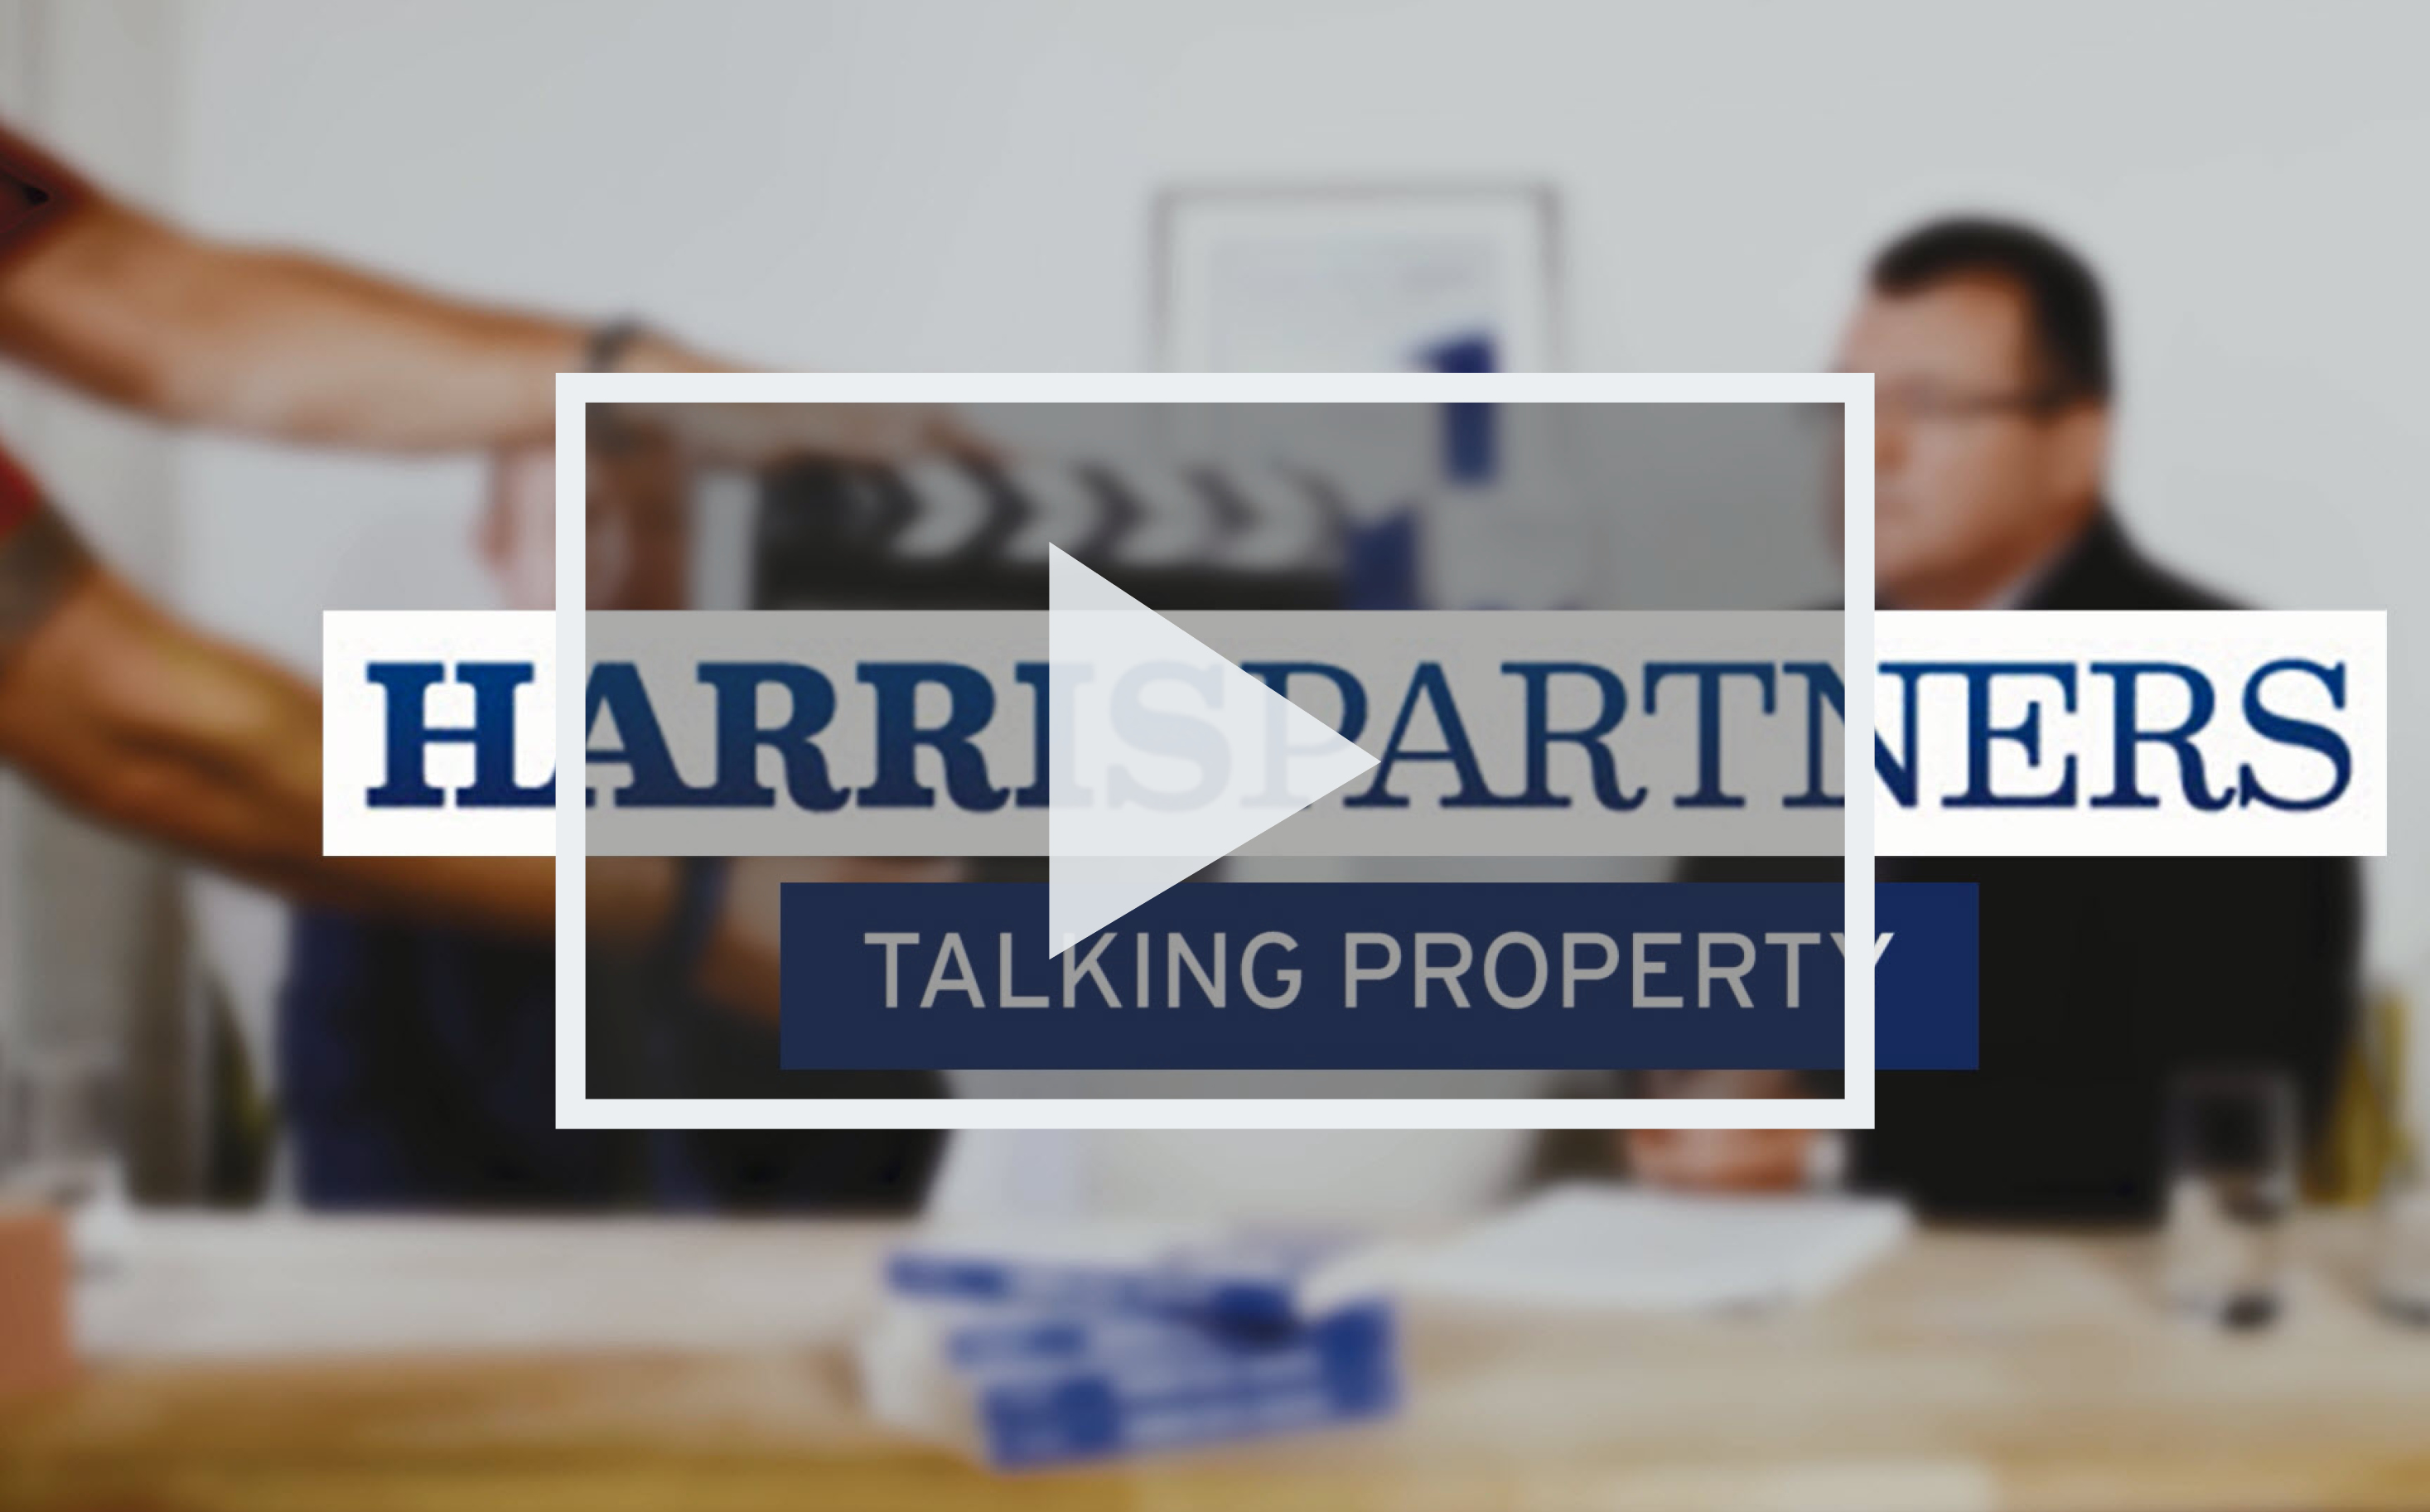 property analyst, talking property, market report, real estate, louis christopher, sqm research, peter o'malley, inside real estate, sydney real estate, sydney property, buying property, how to buy property, selling property, how to sell property